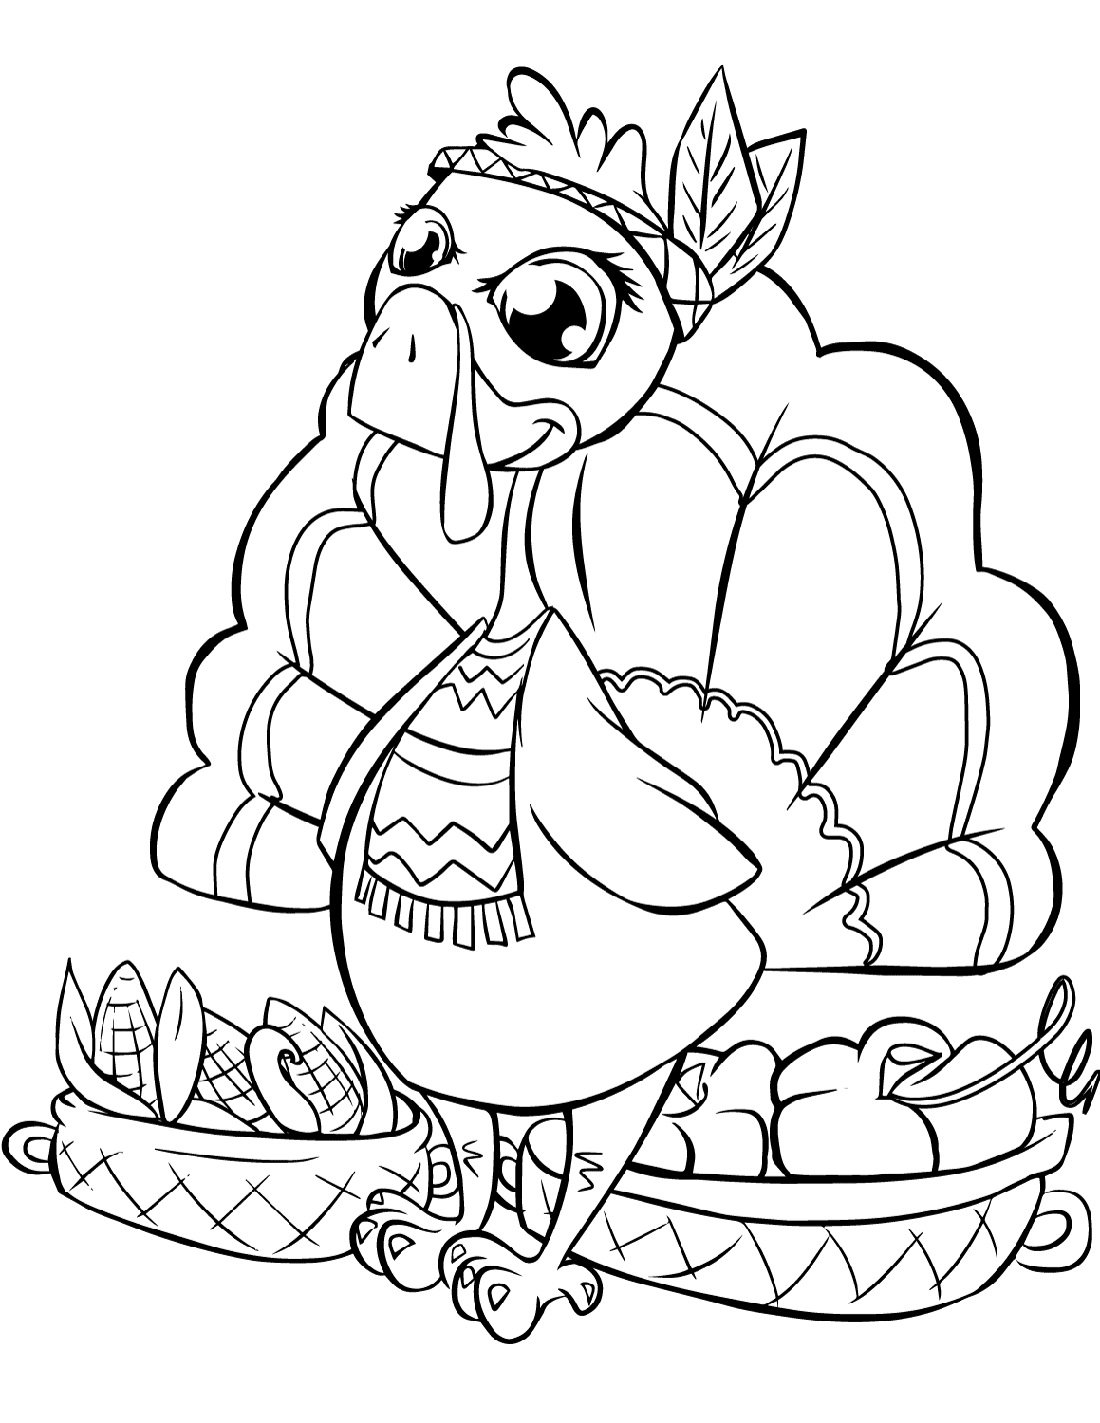 Free Printable Thanksgiving Coloring Pages | 101 Coloring